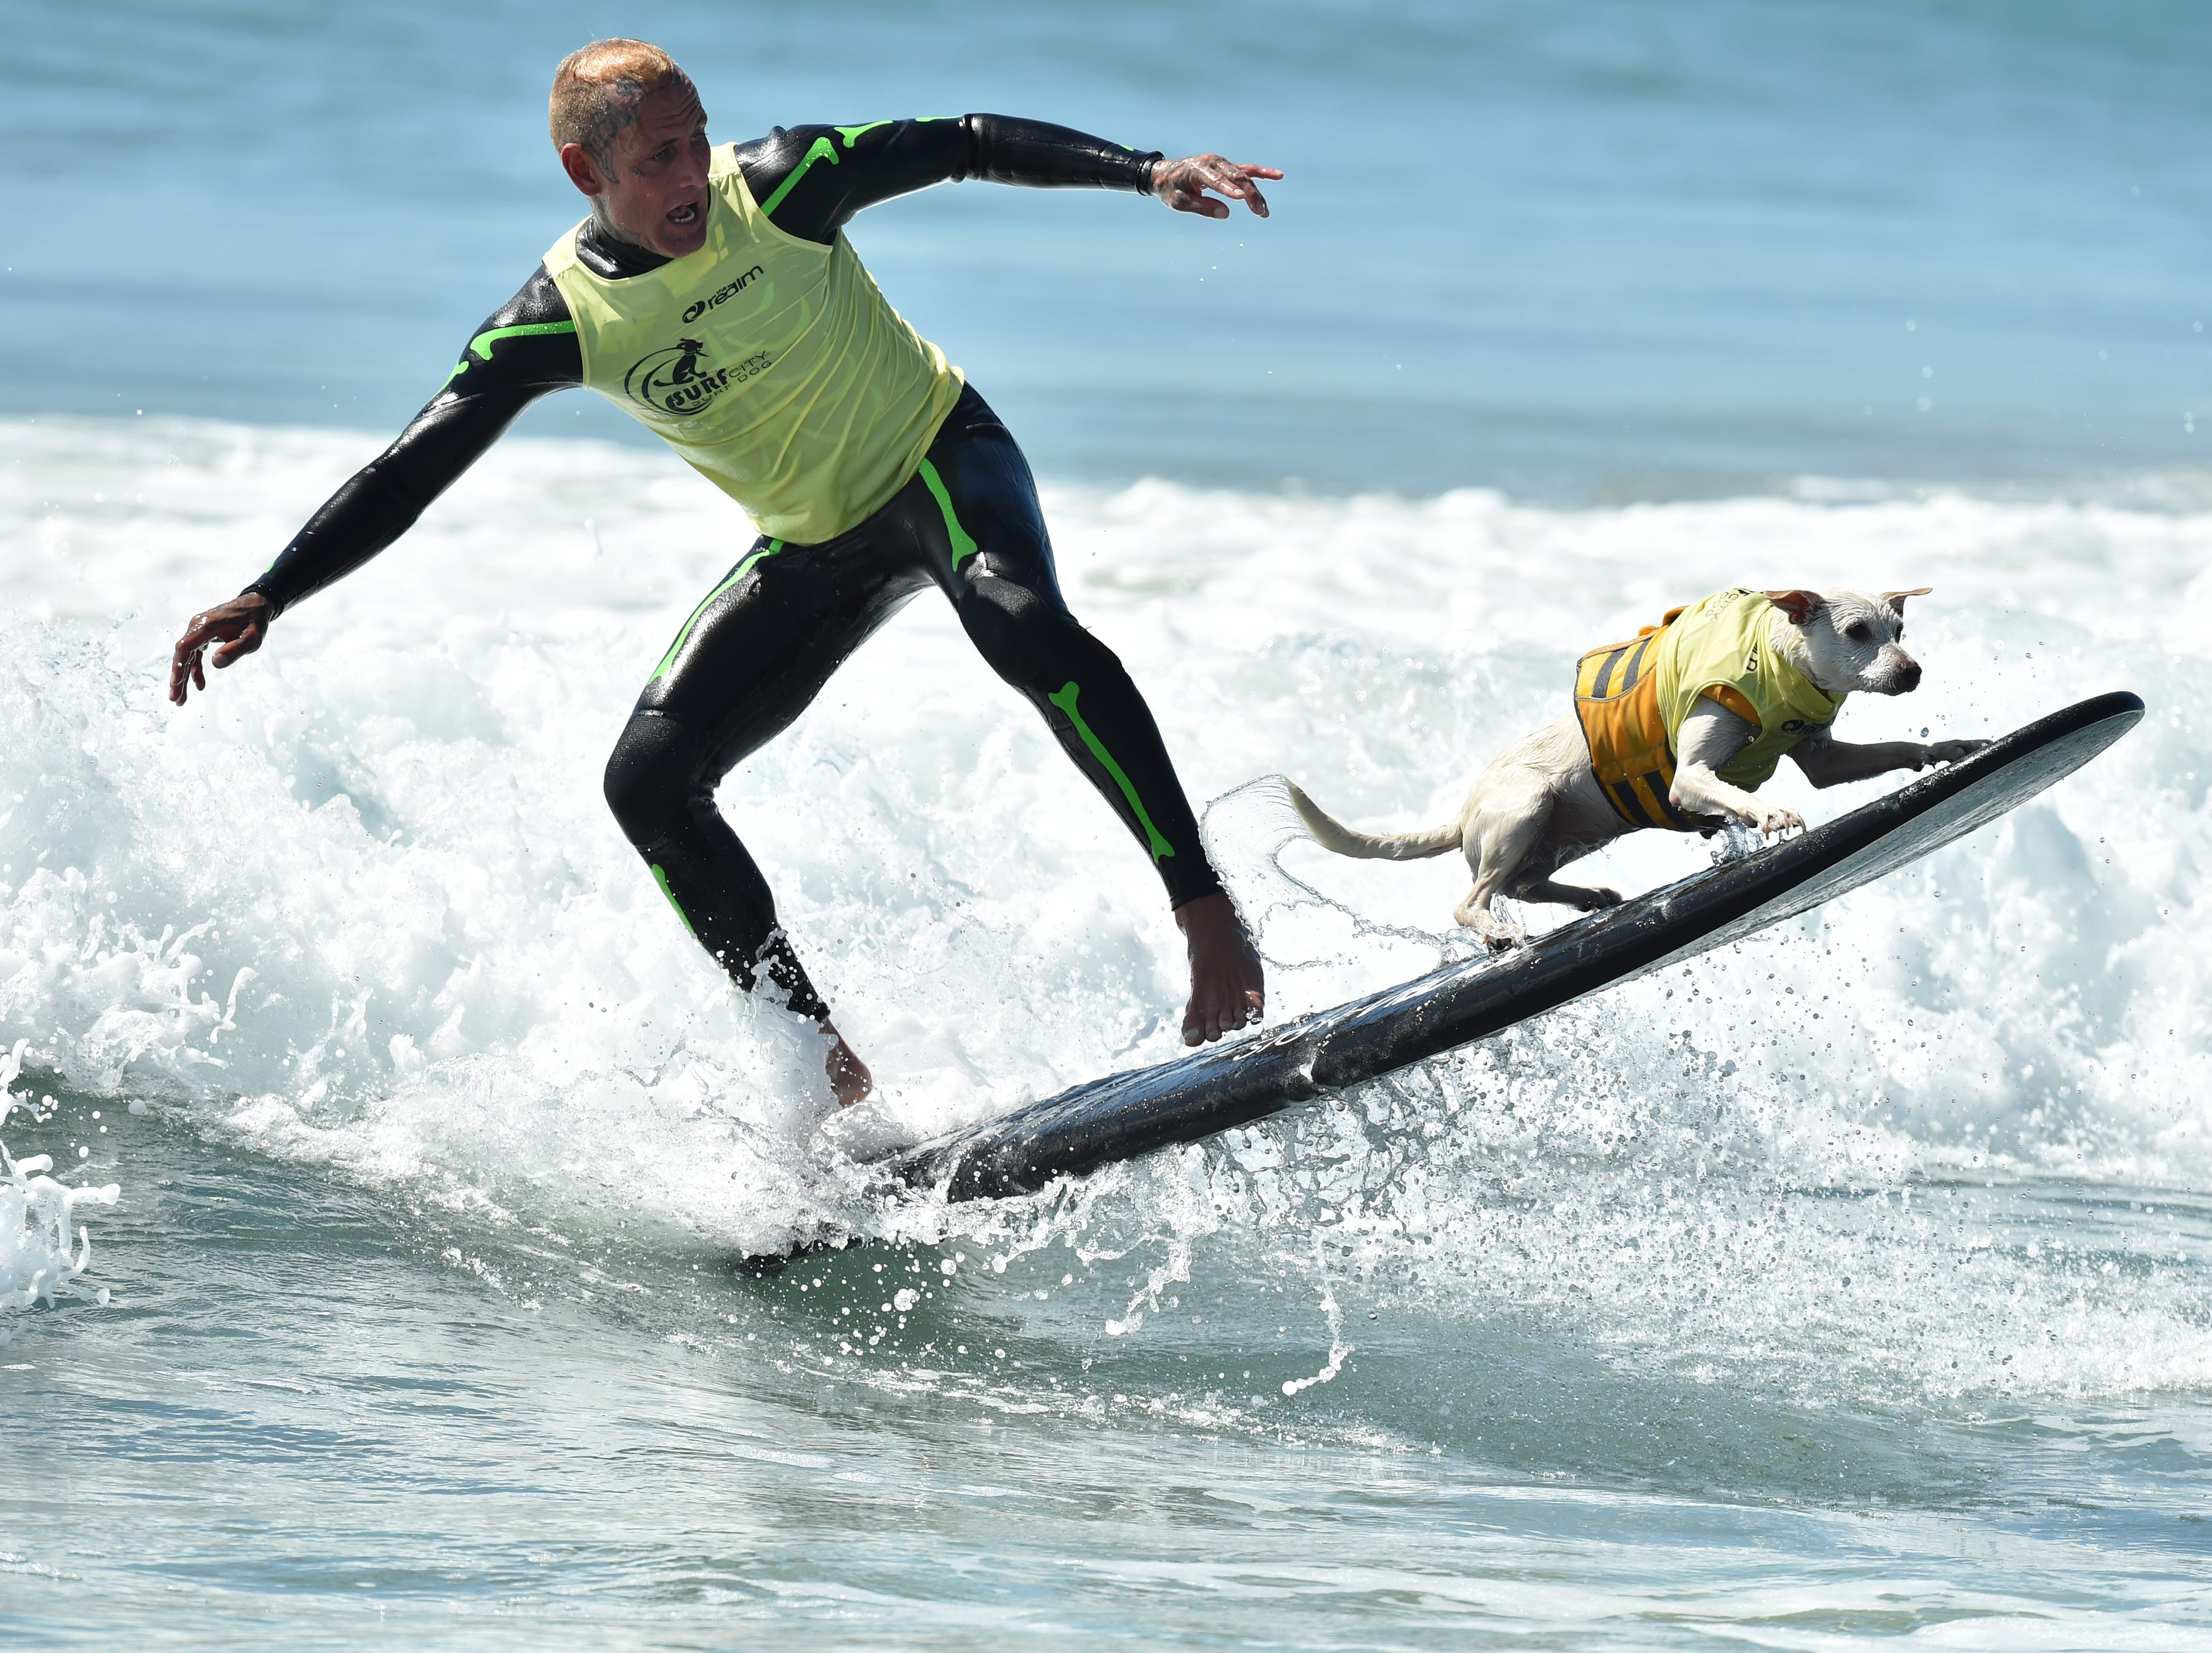 HUNTINGTON BEACH, CA - SEPTEMBER 29:  Sugar the Surfing Dog and Ryan Rustan compete in the 10th Annual Surf City Surf Dog competition on September 29, 2018 in Huntington Beach, California.  (Photo by Axelle/Bauer-Griffin/FilmMagic) ORG XMIT: 775218625 ORIG FILE ID: 1043271174